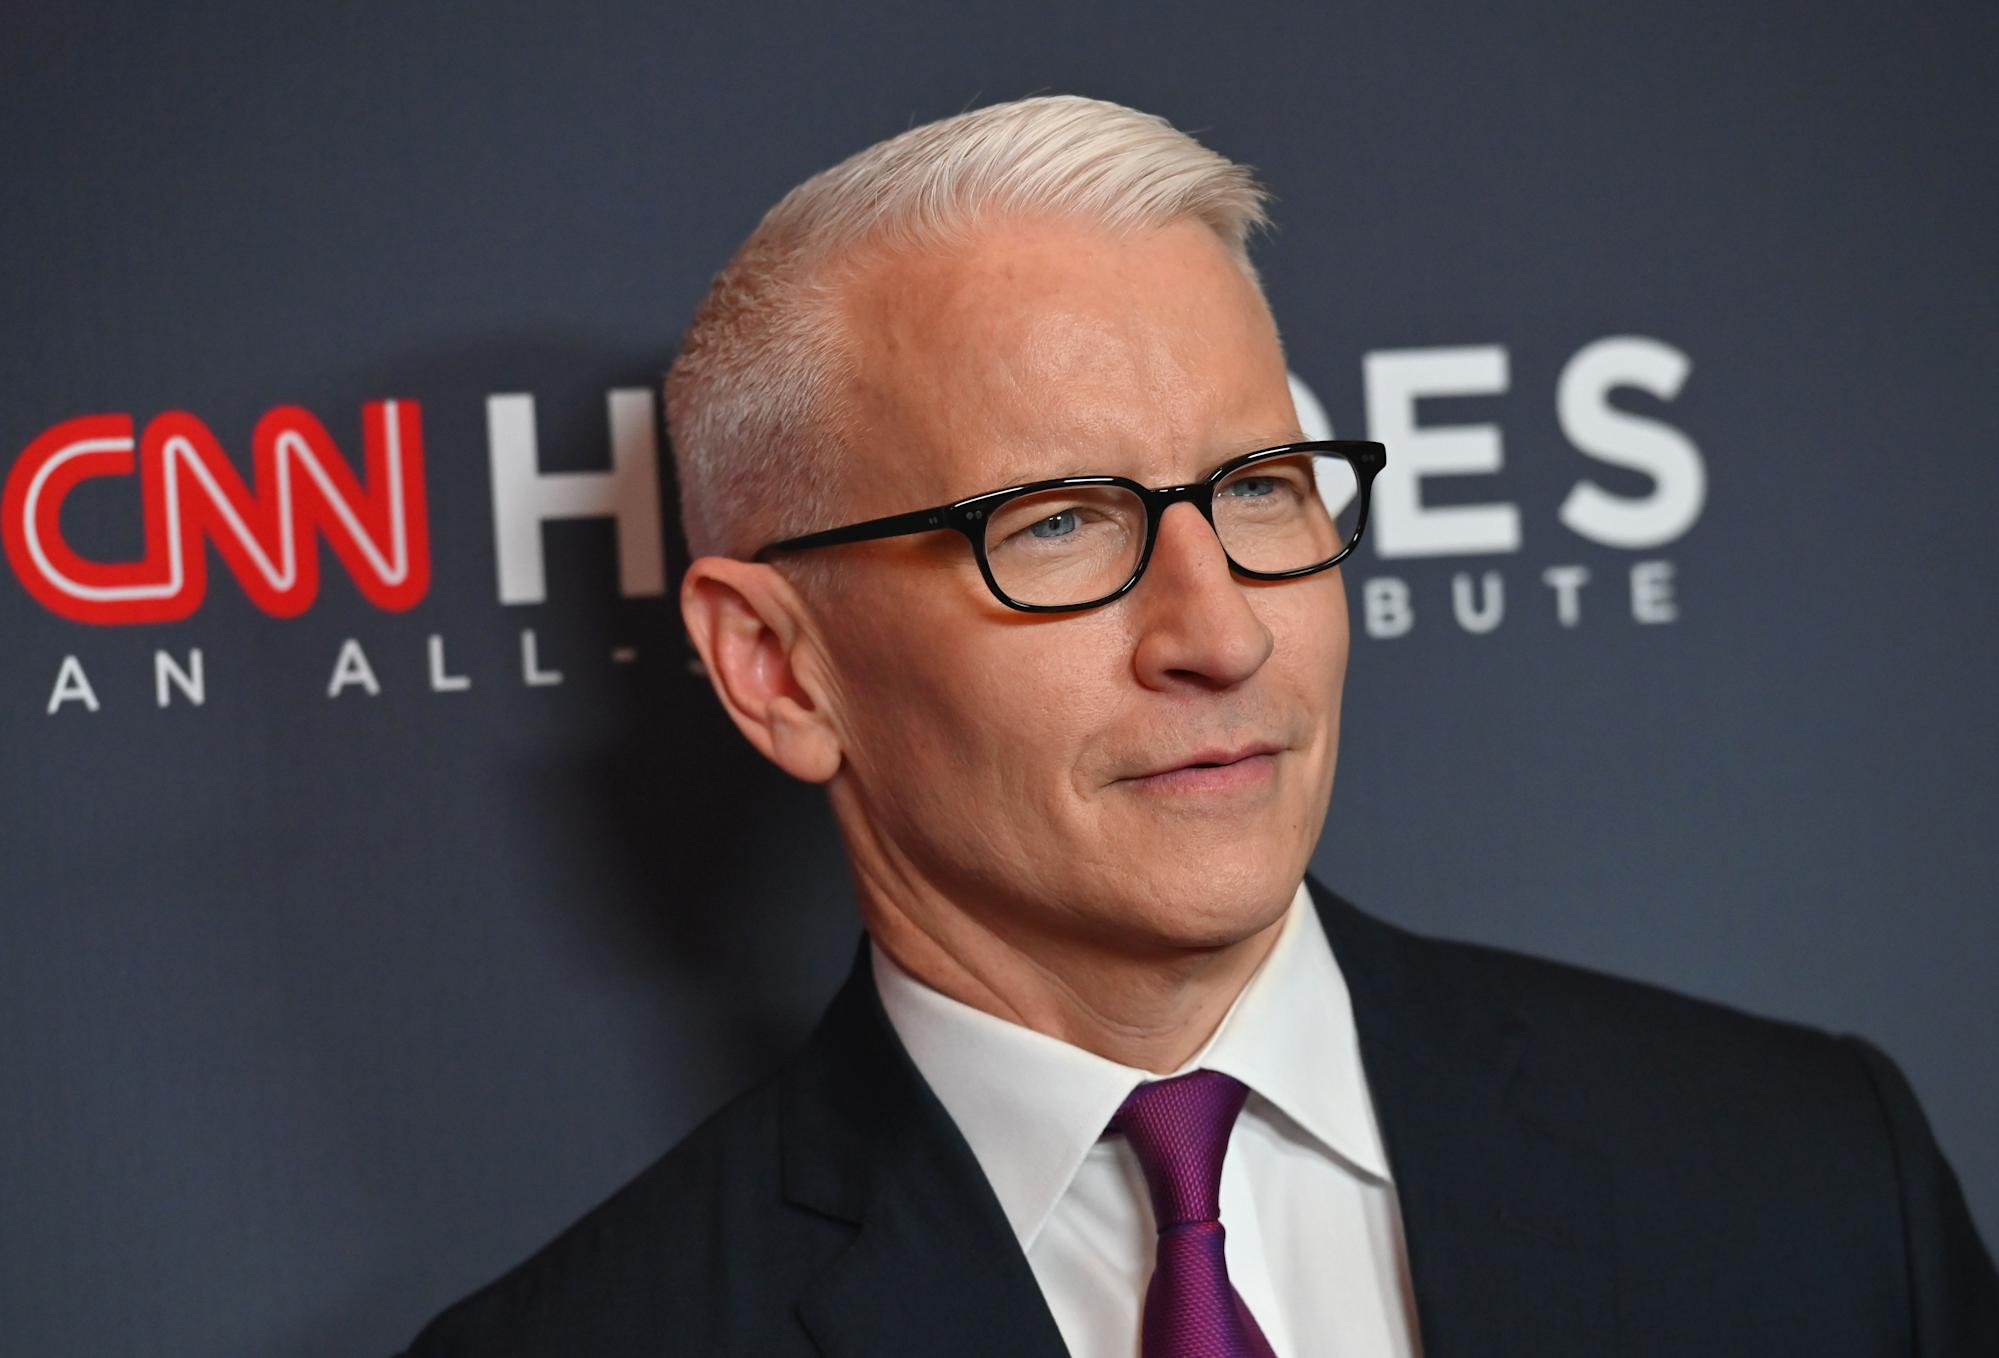 Anderson Cooper admits he's 'actually kind of nervous' to host 'Jeopardy!'